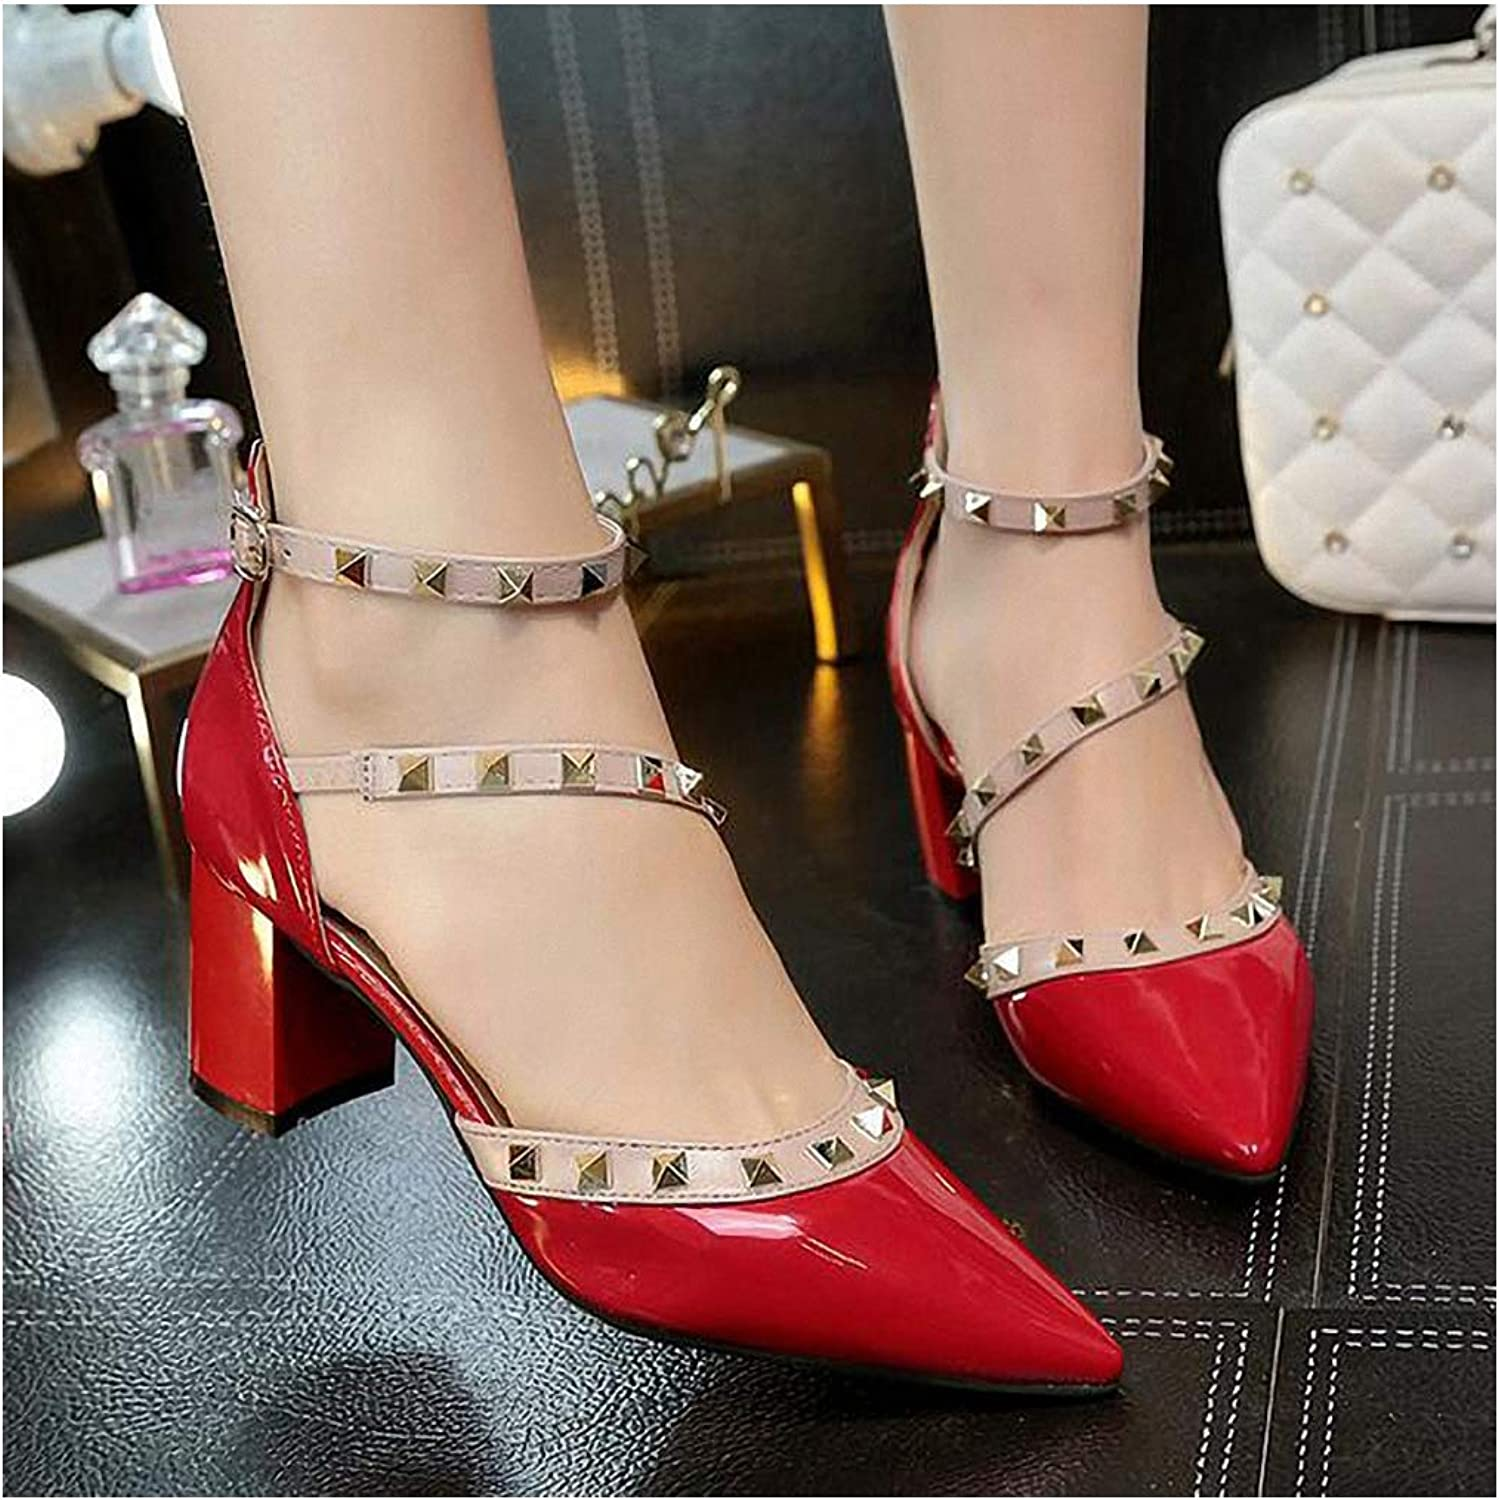 Womens High-Heeled Pumps shoes New Woman High Heels shoes Ladies Sexy Pointed Toe Pumps Buckle Rivets Nude Heels Dress Wedding shoes